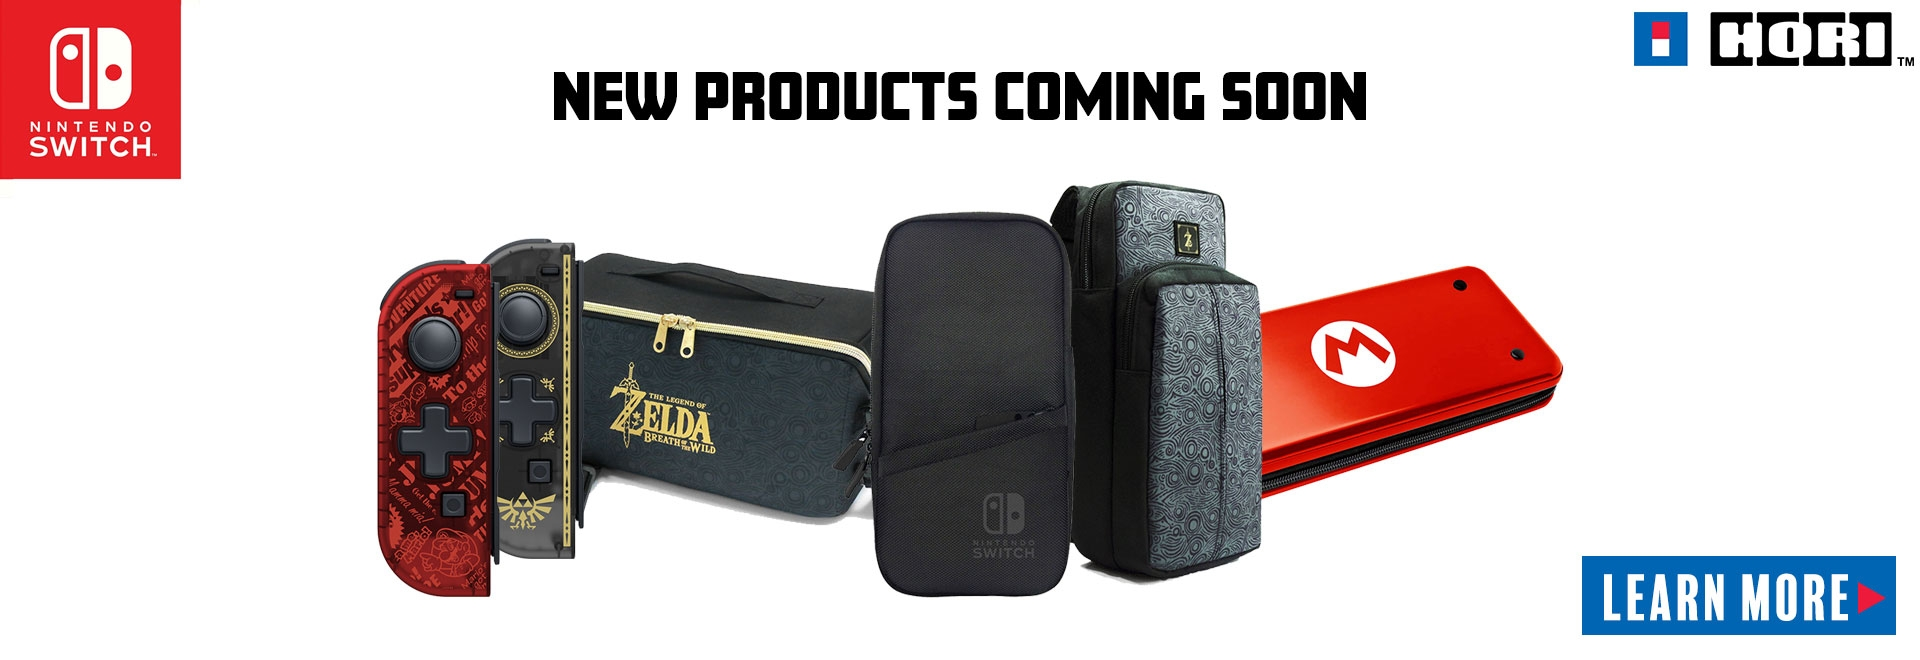 Upcoming Hori Products